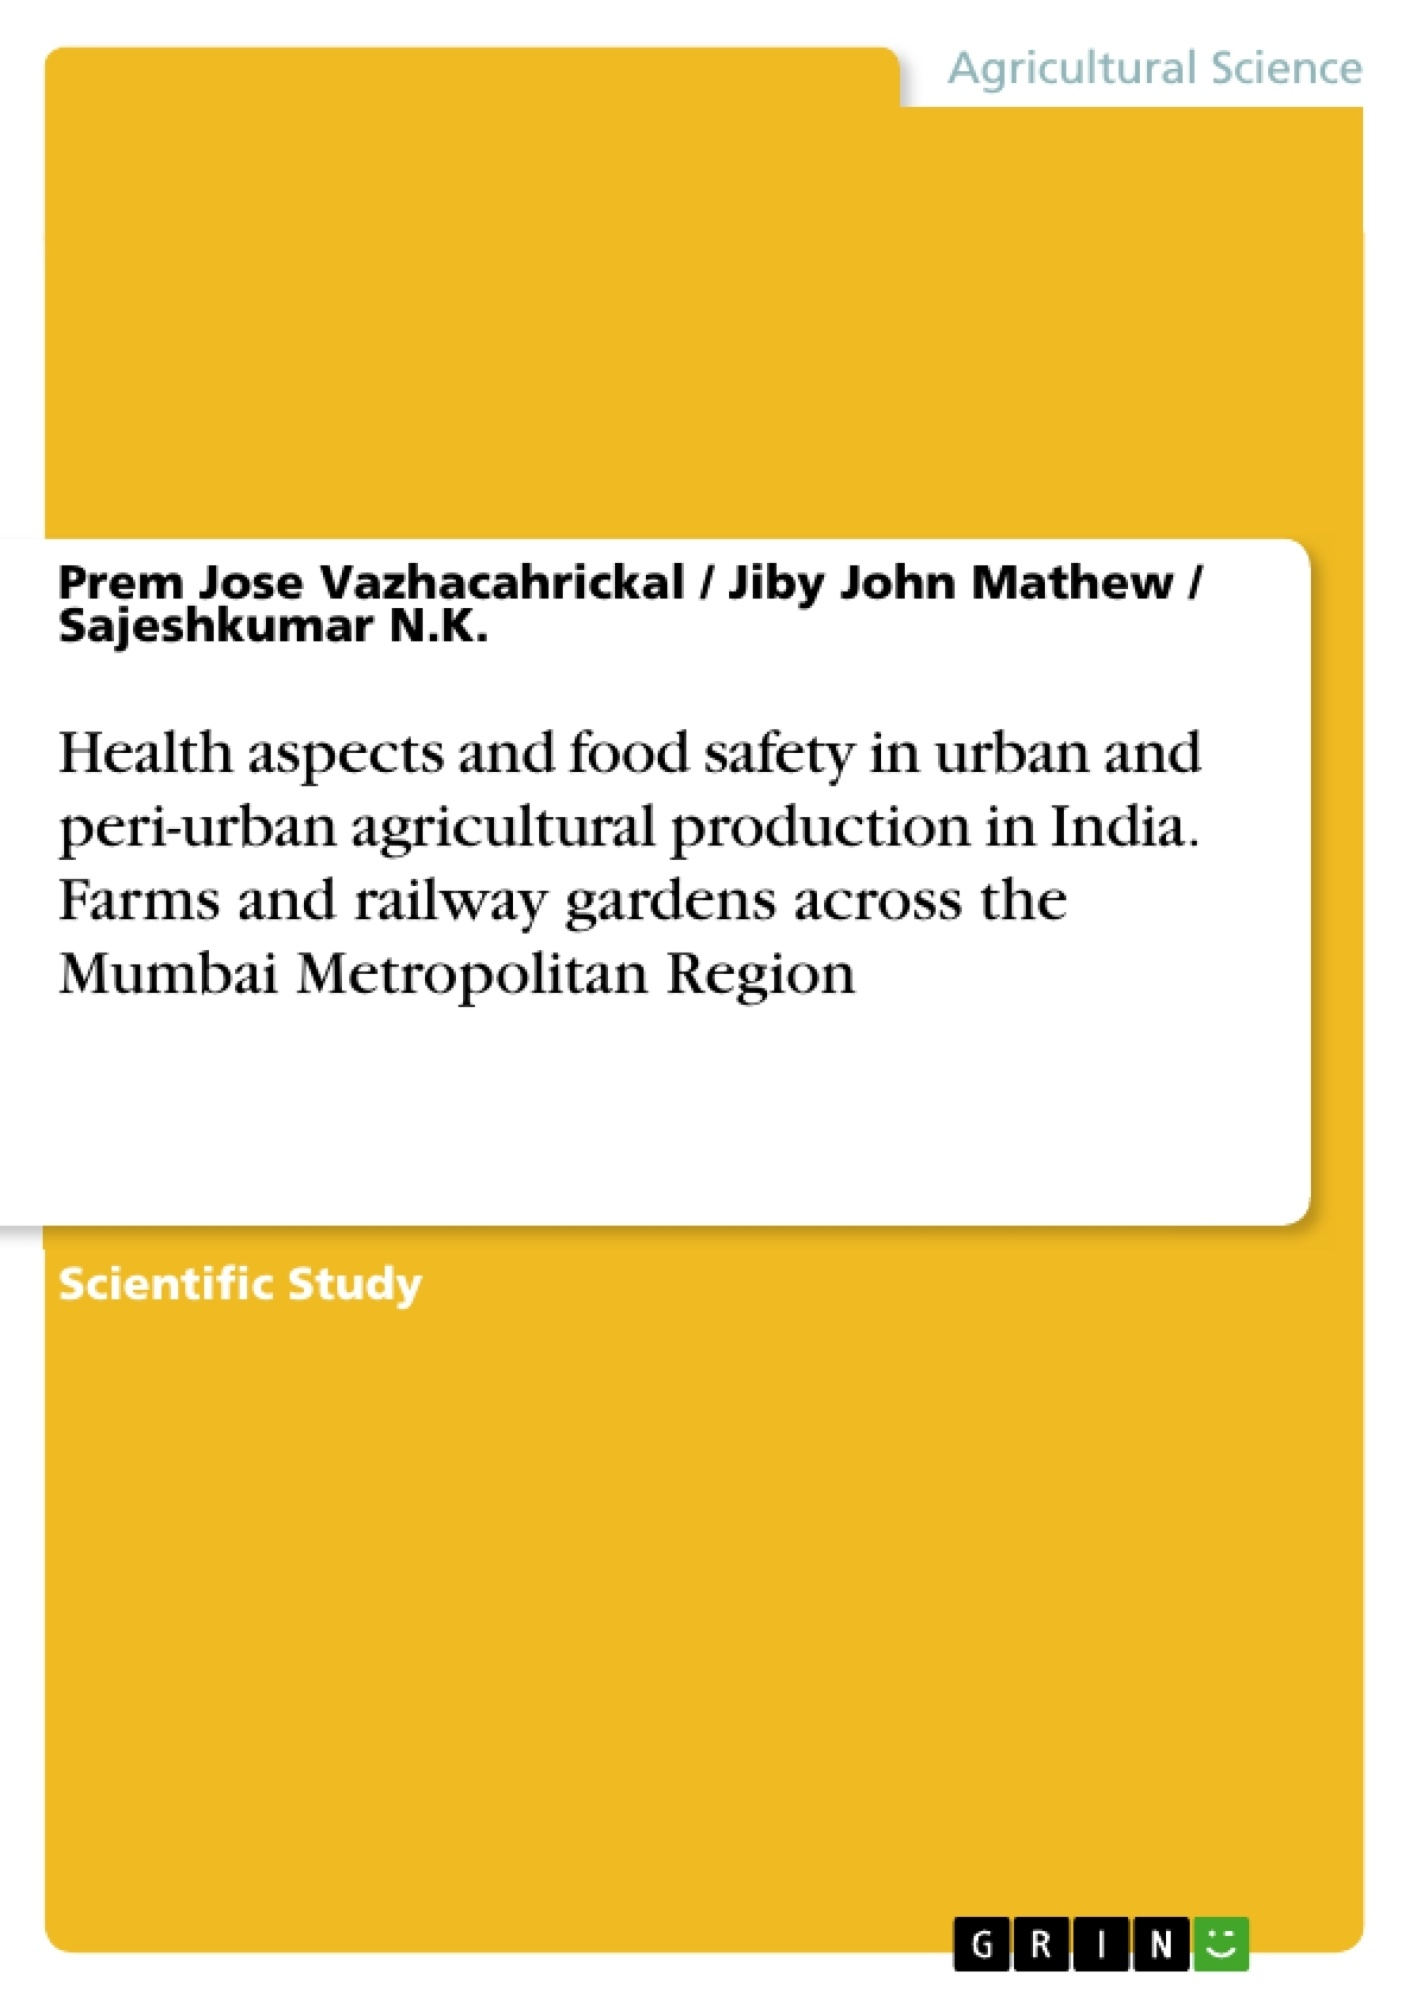 Title: Health aspects and food safety in urban and peri-urban agricultural production in India. Farms and railway gardens across the Mumbai Metropolitan Region